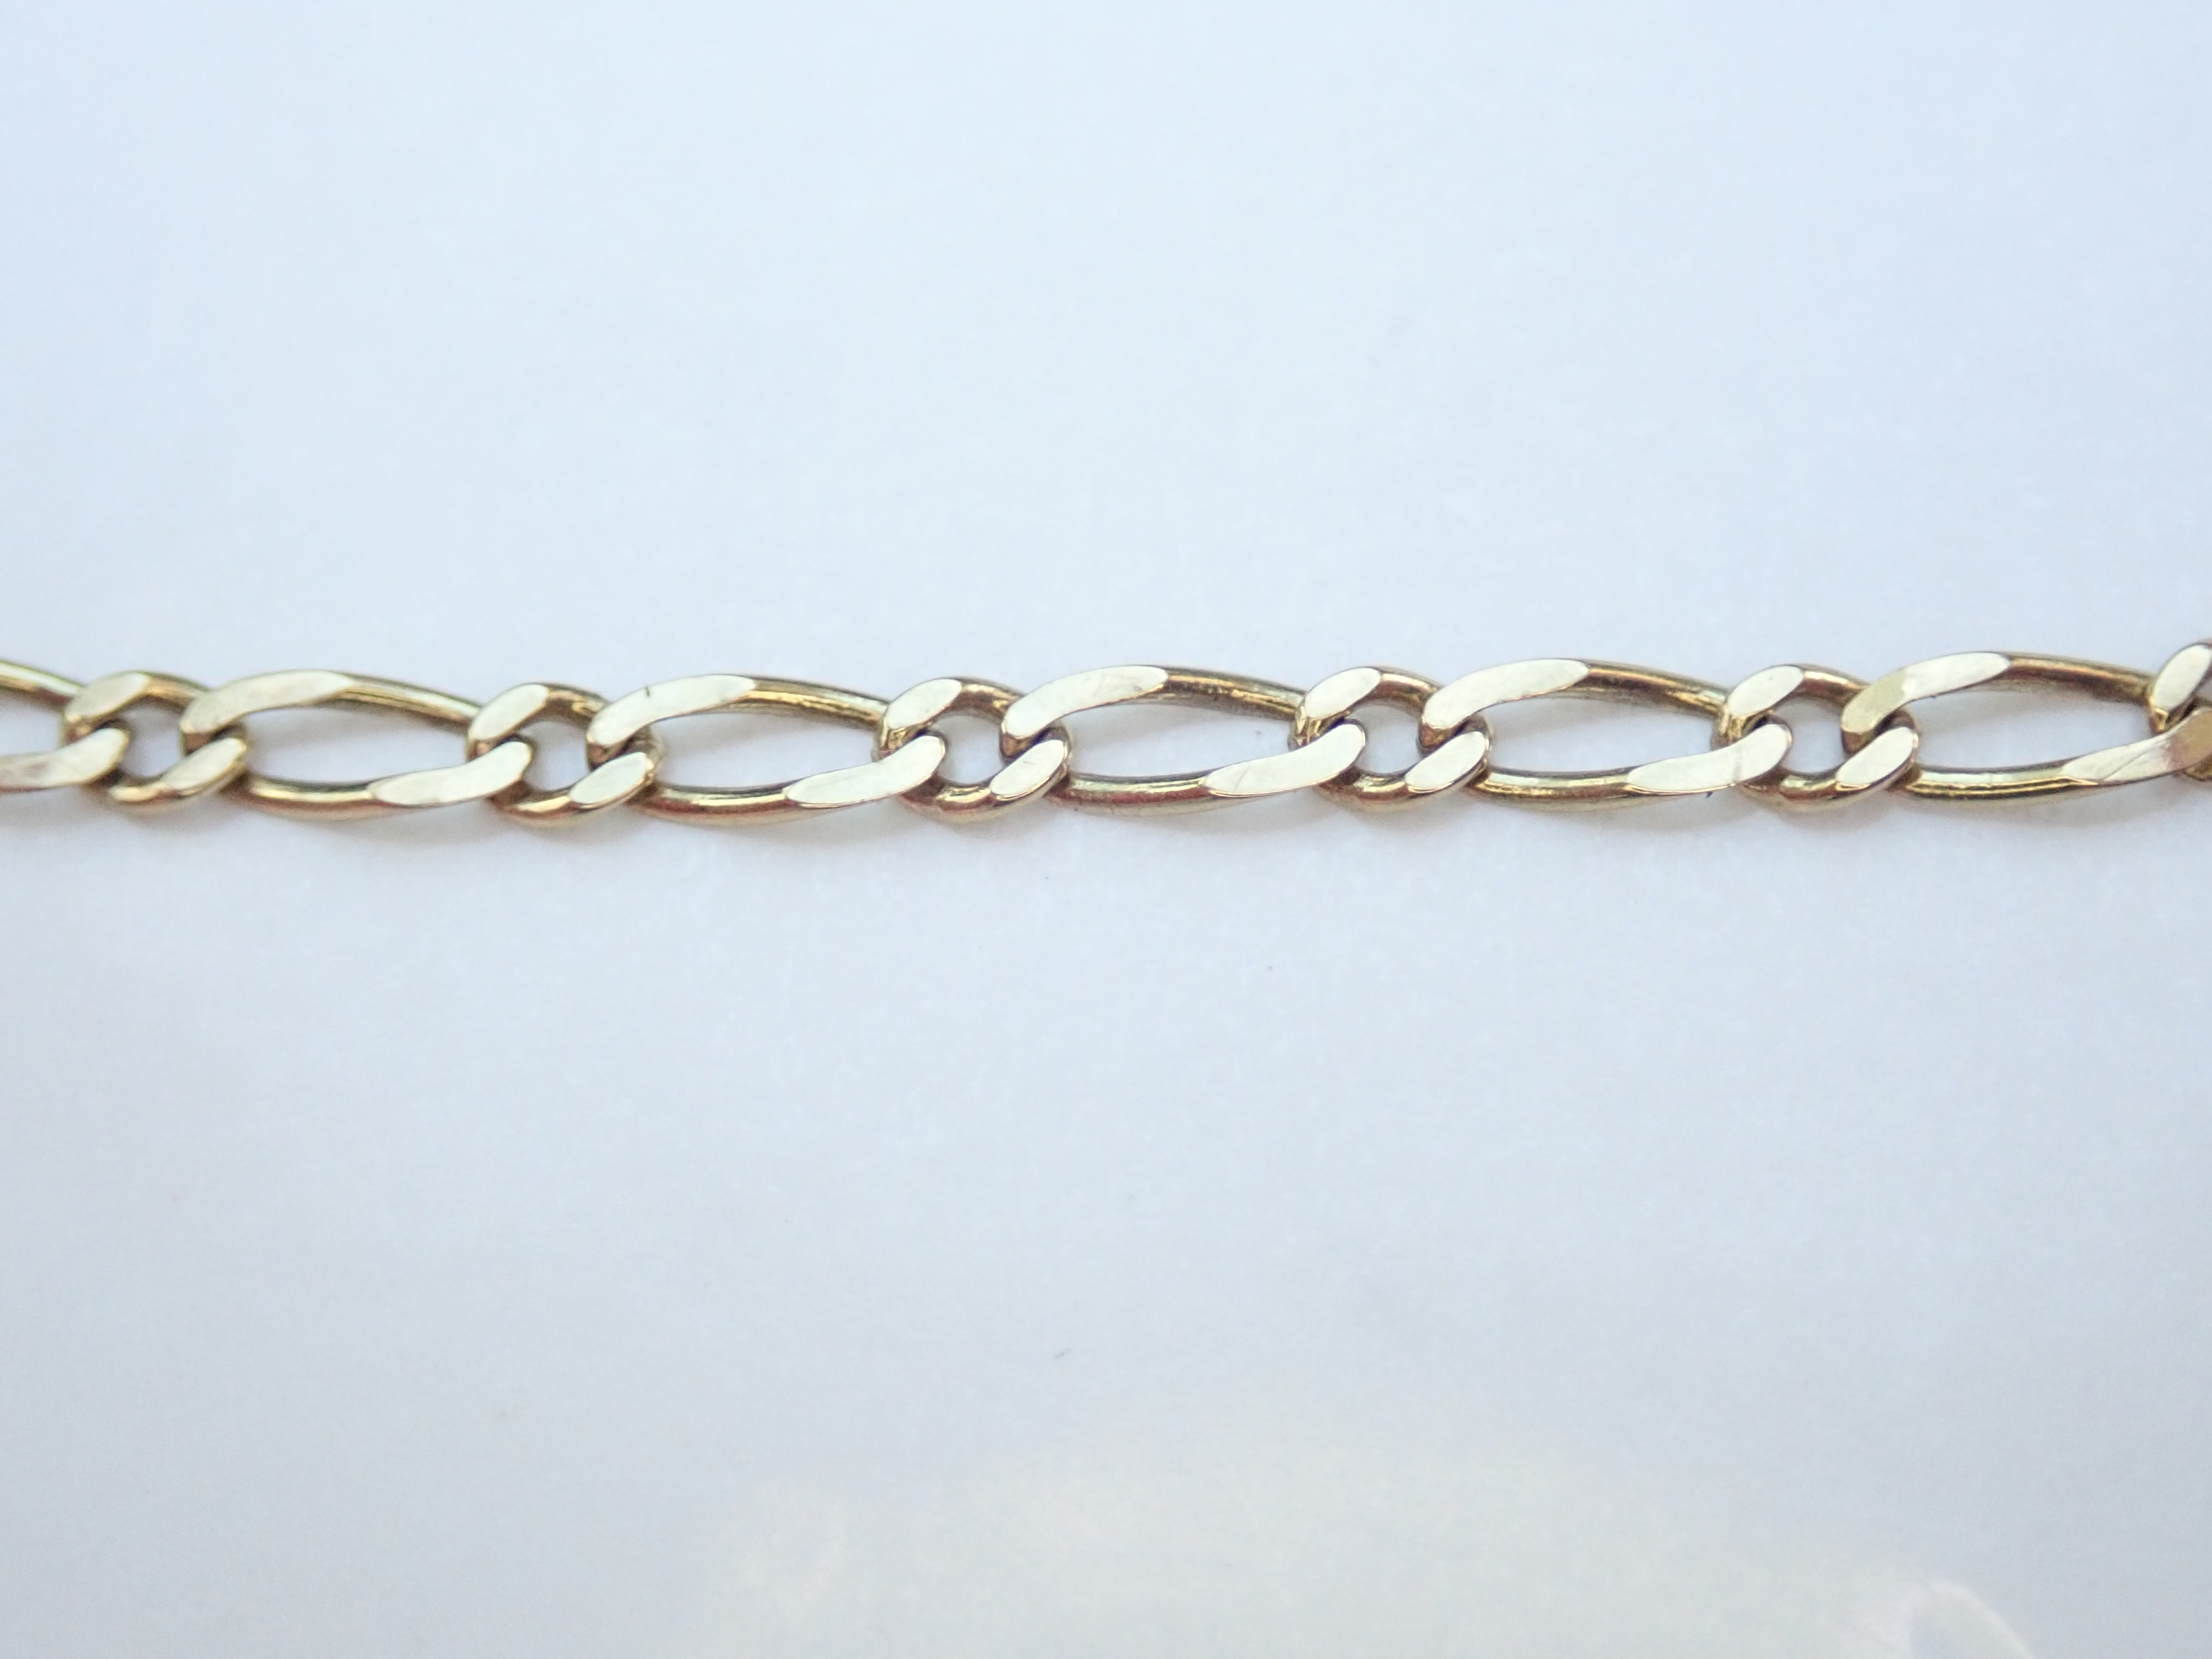 Solid 9K Yellow Gold Figaro Link Chain Bracelet 7″ – 1.3g  #31